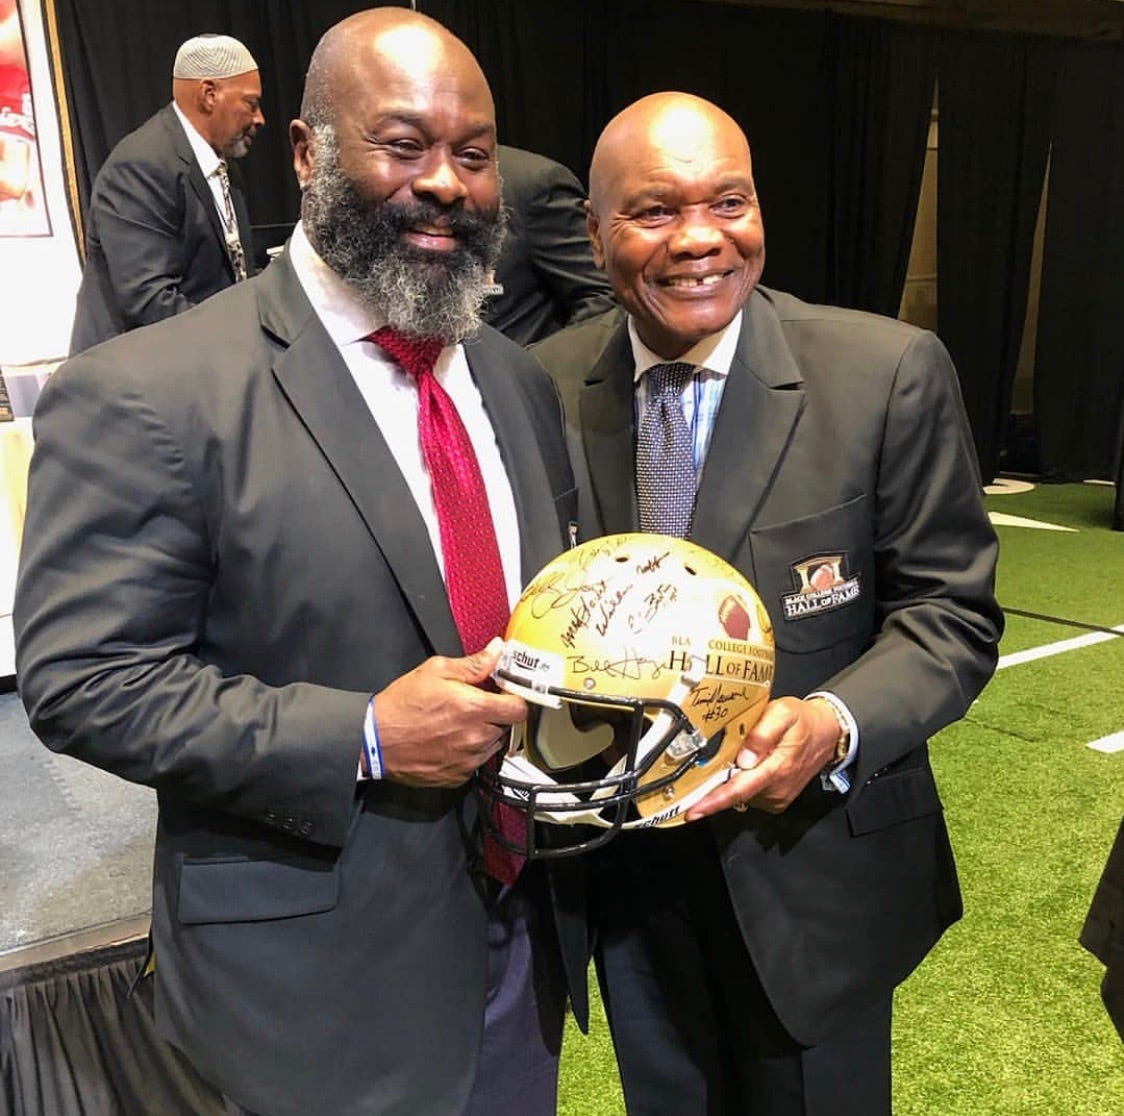 Huge honor for Hugh: Ex-Tyger elected to Black College Football HOF